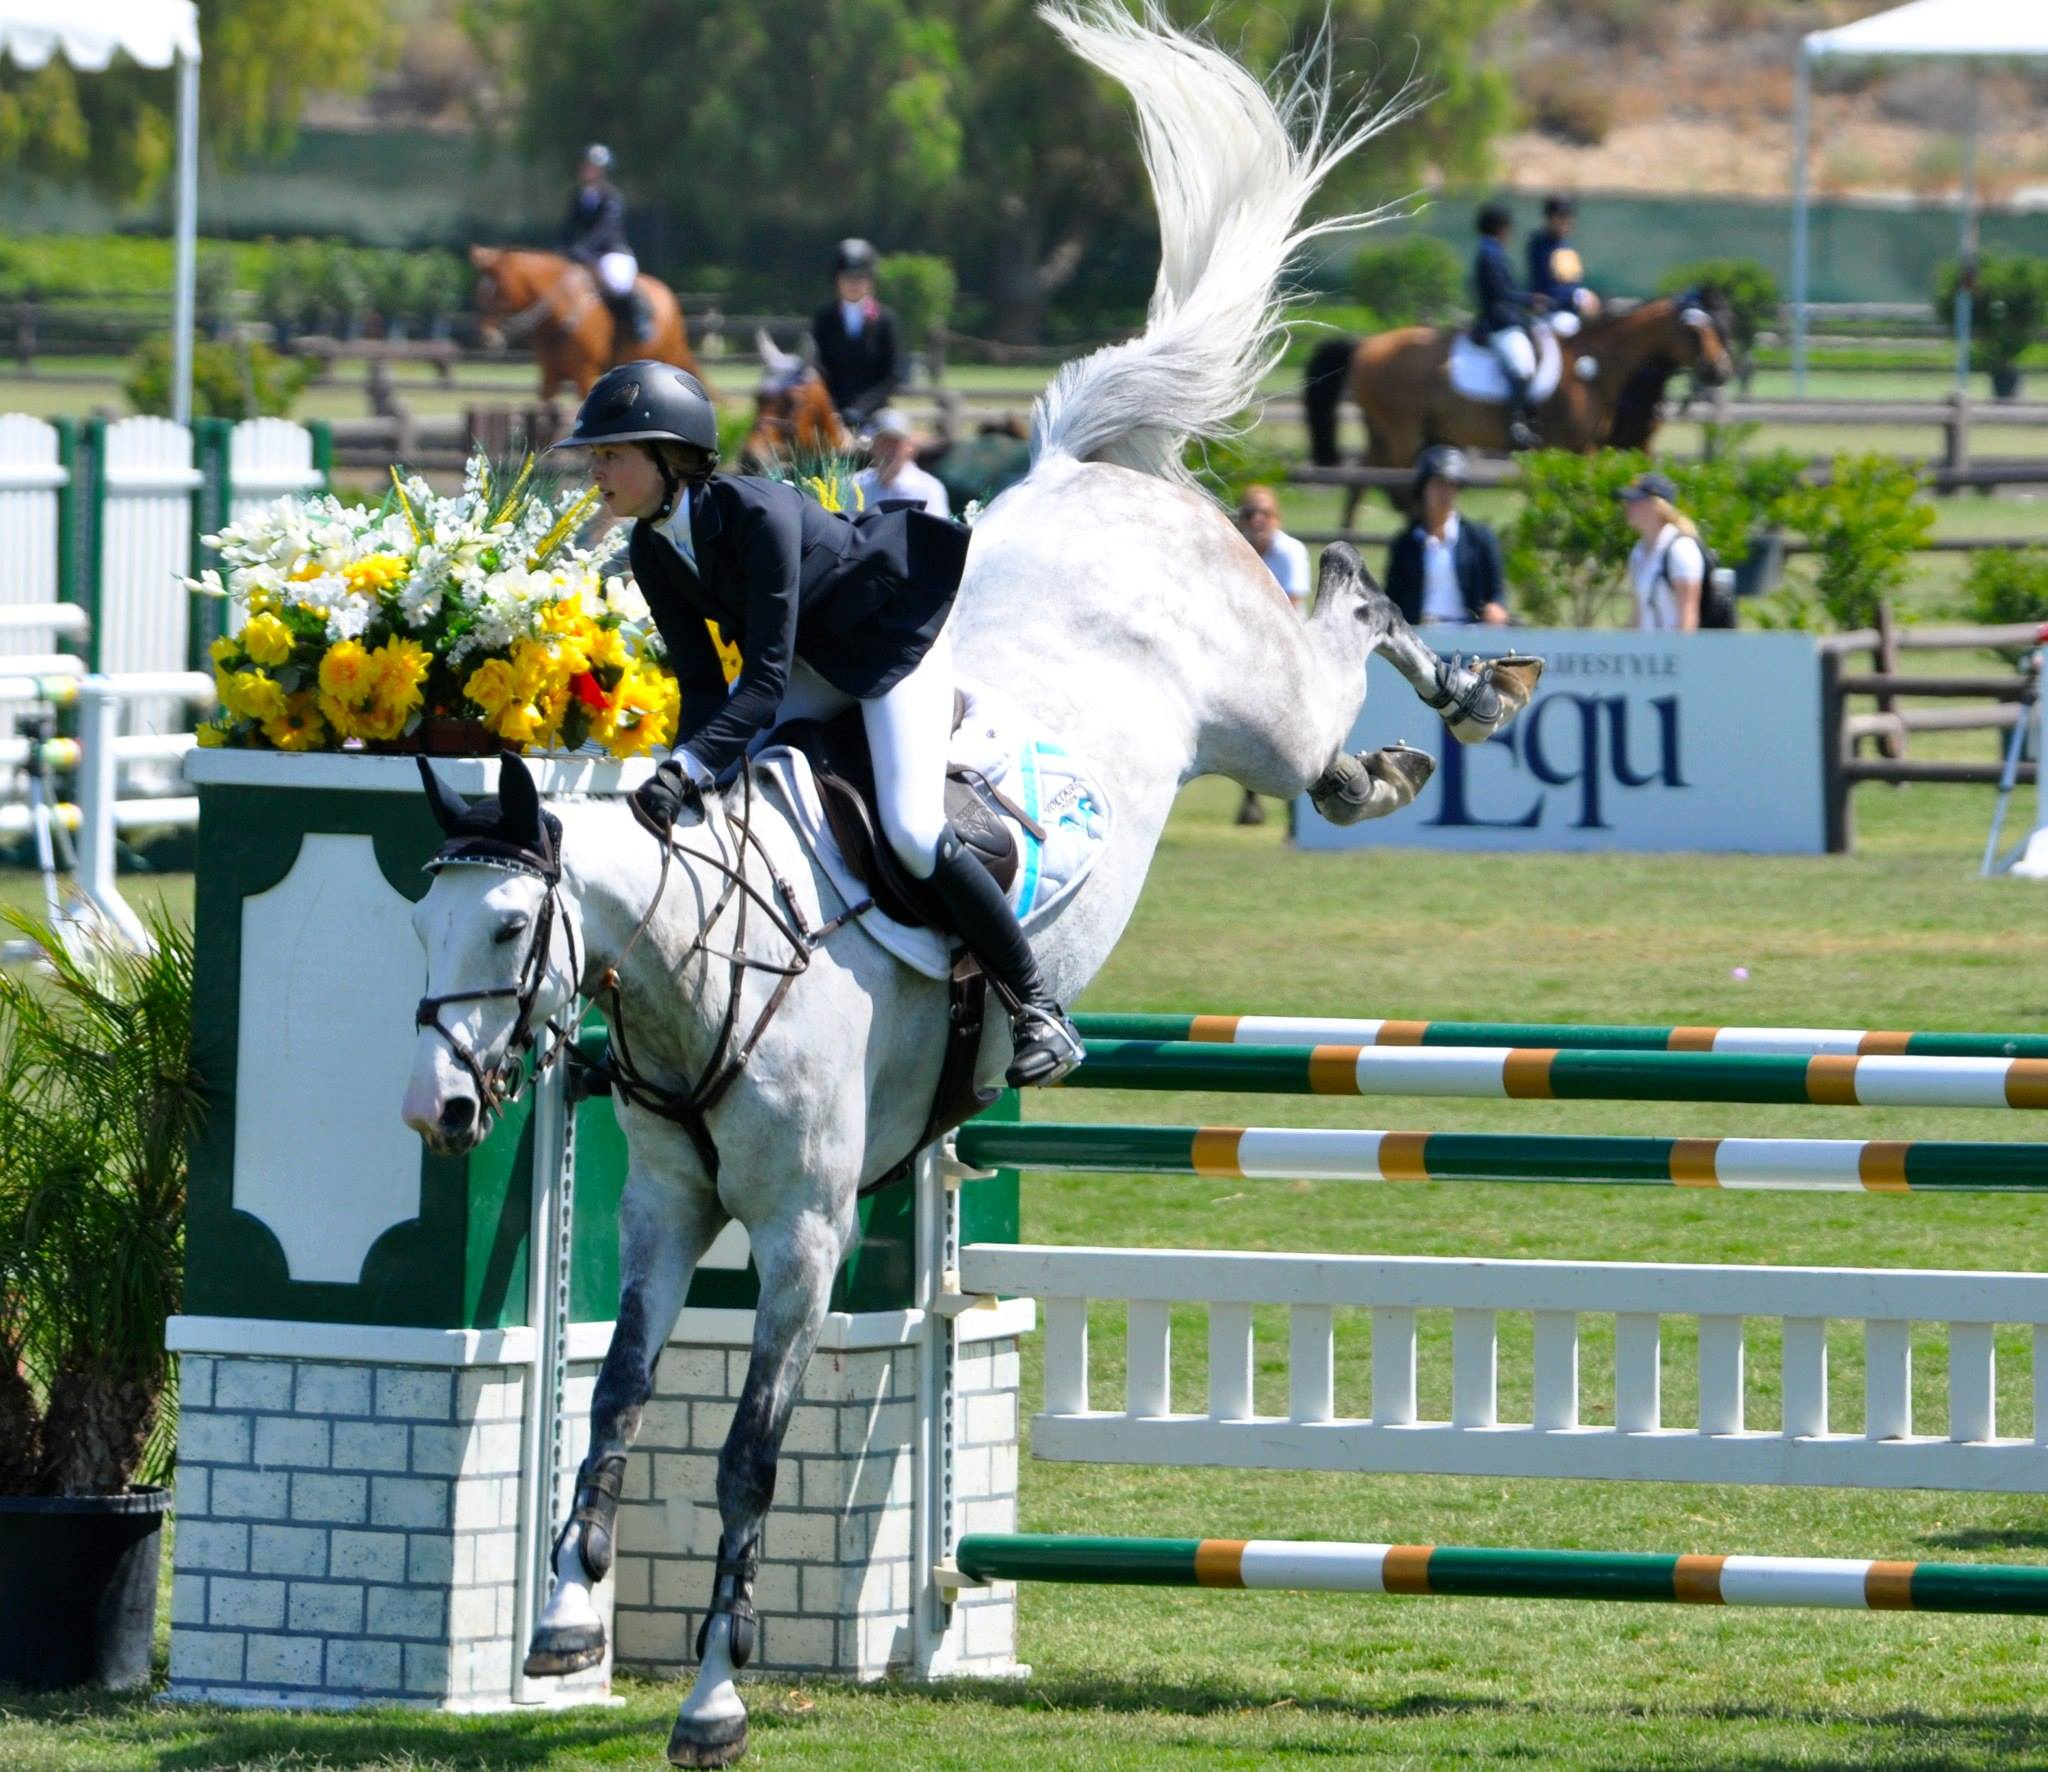 Equestrian S Journey To National Success The Campanile